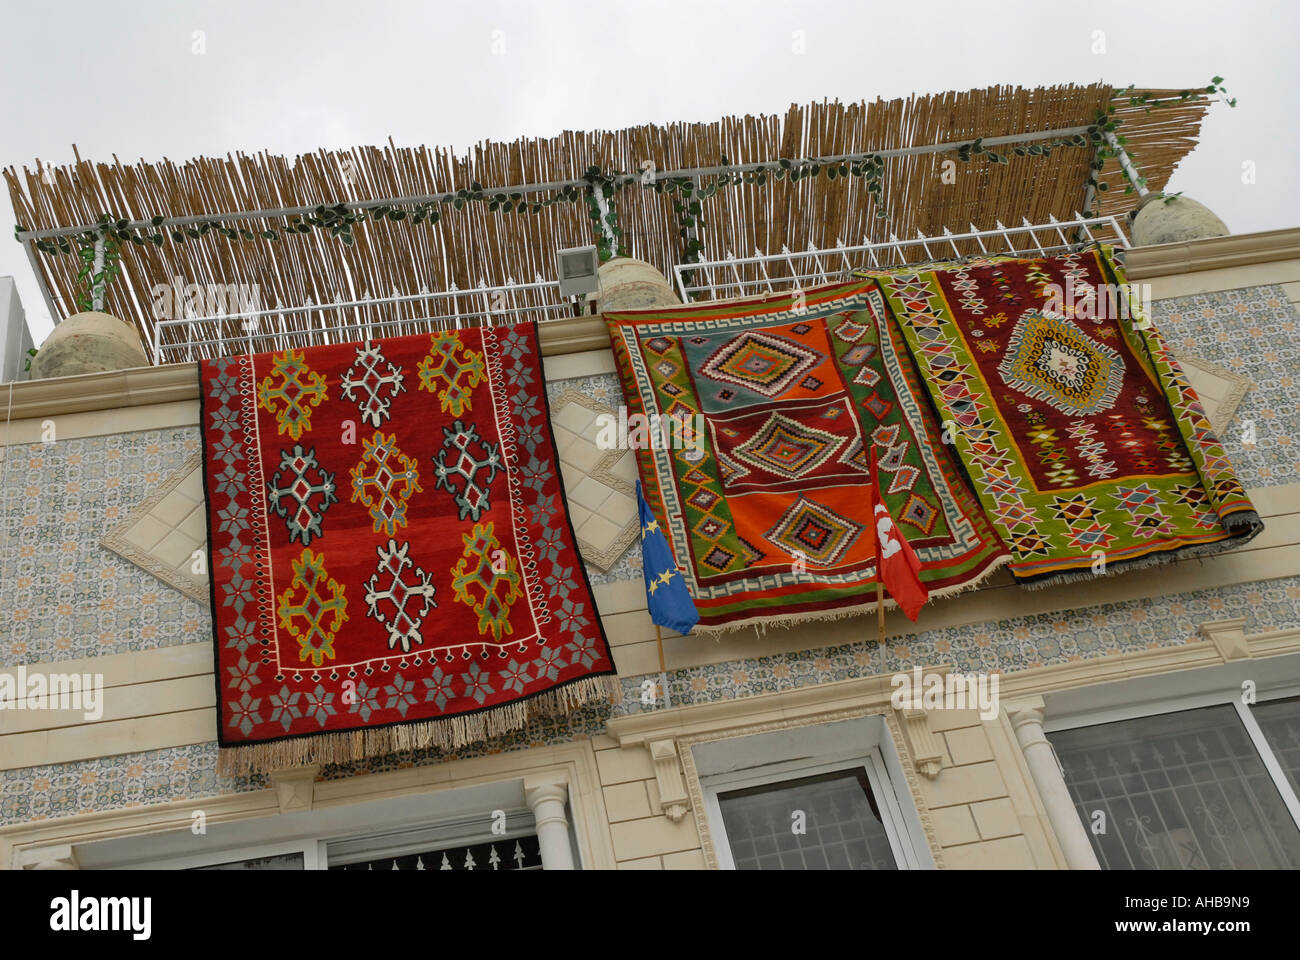 Hanging Rugs Traditional Carpets And Rugs Hanging On Display For Sale In